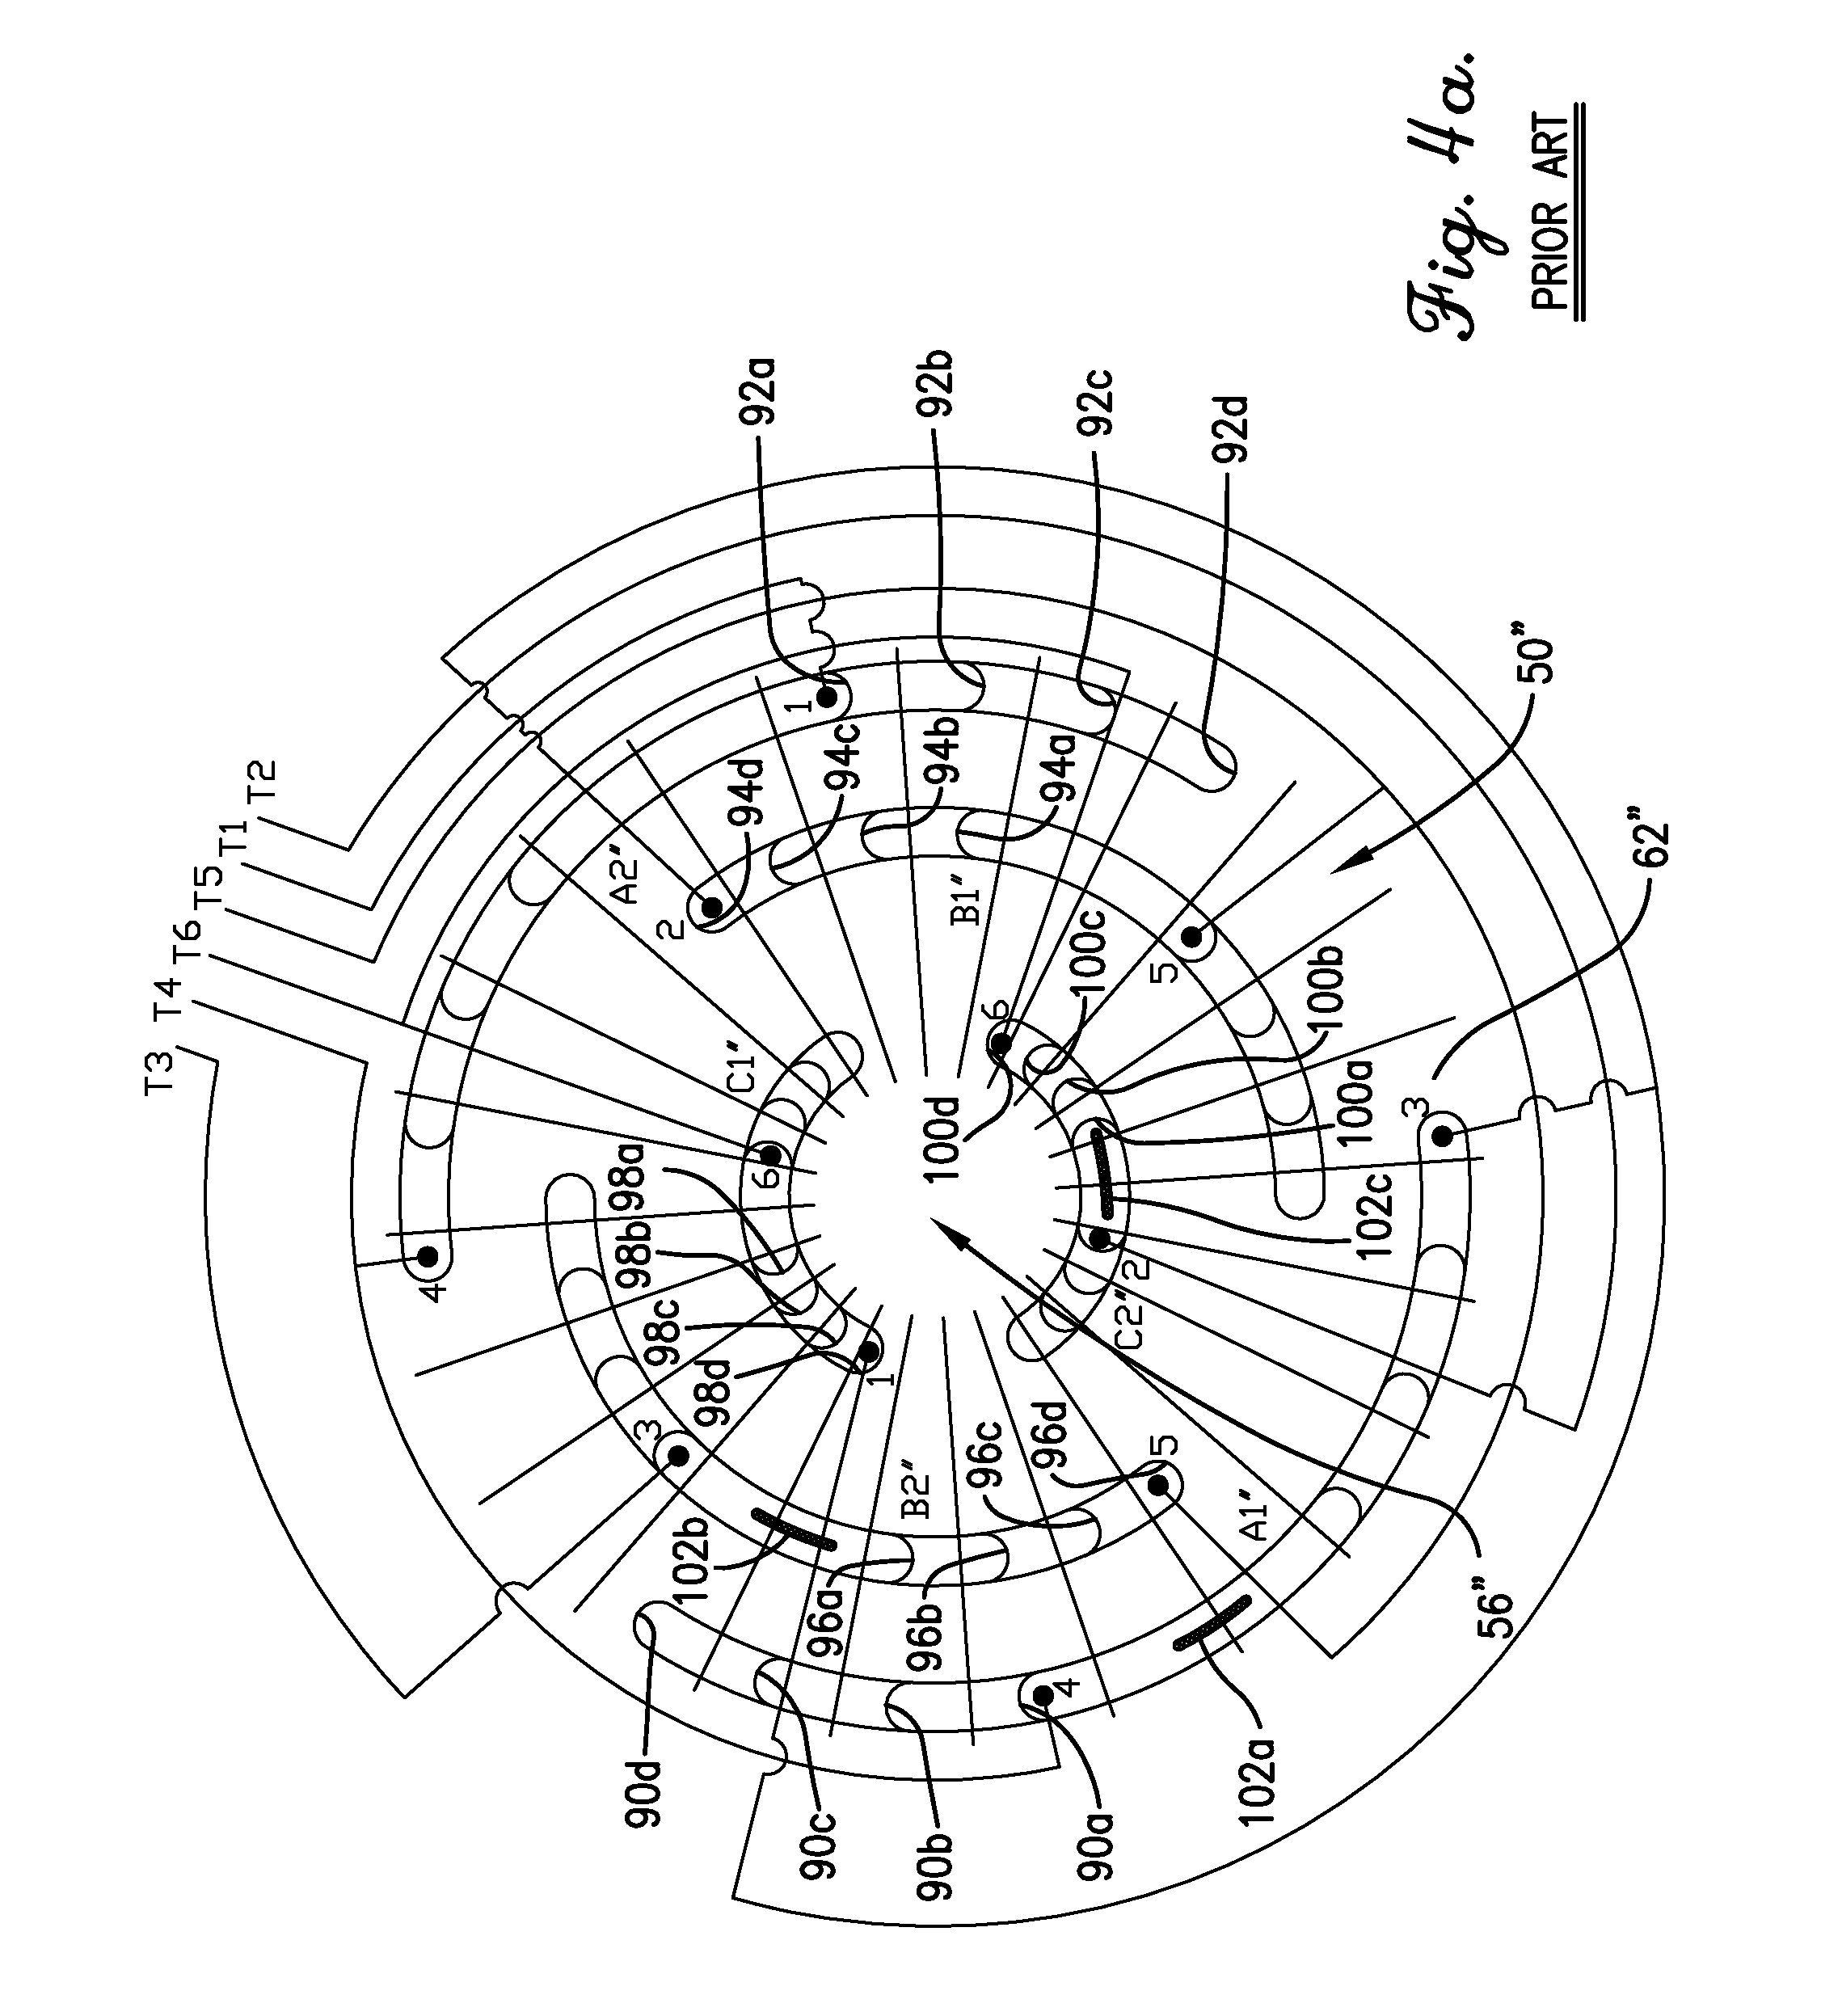 Desk Fan Motor Wiring Diagram Phase Induction Star Delta Connection Images 12 Leads Patent Drawing